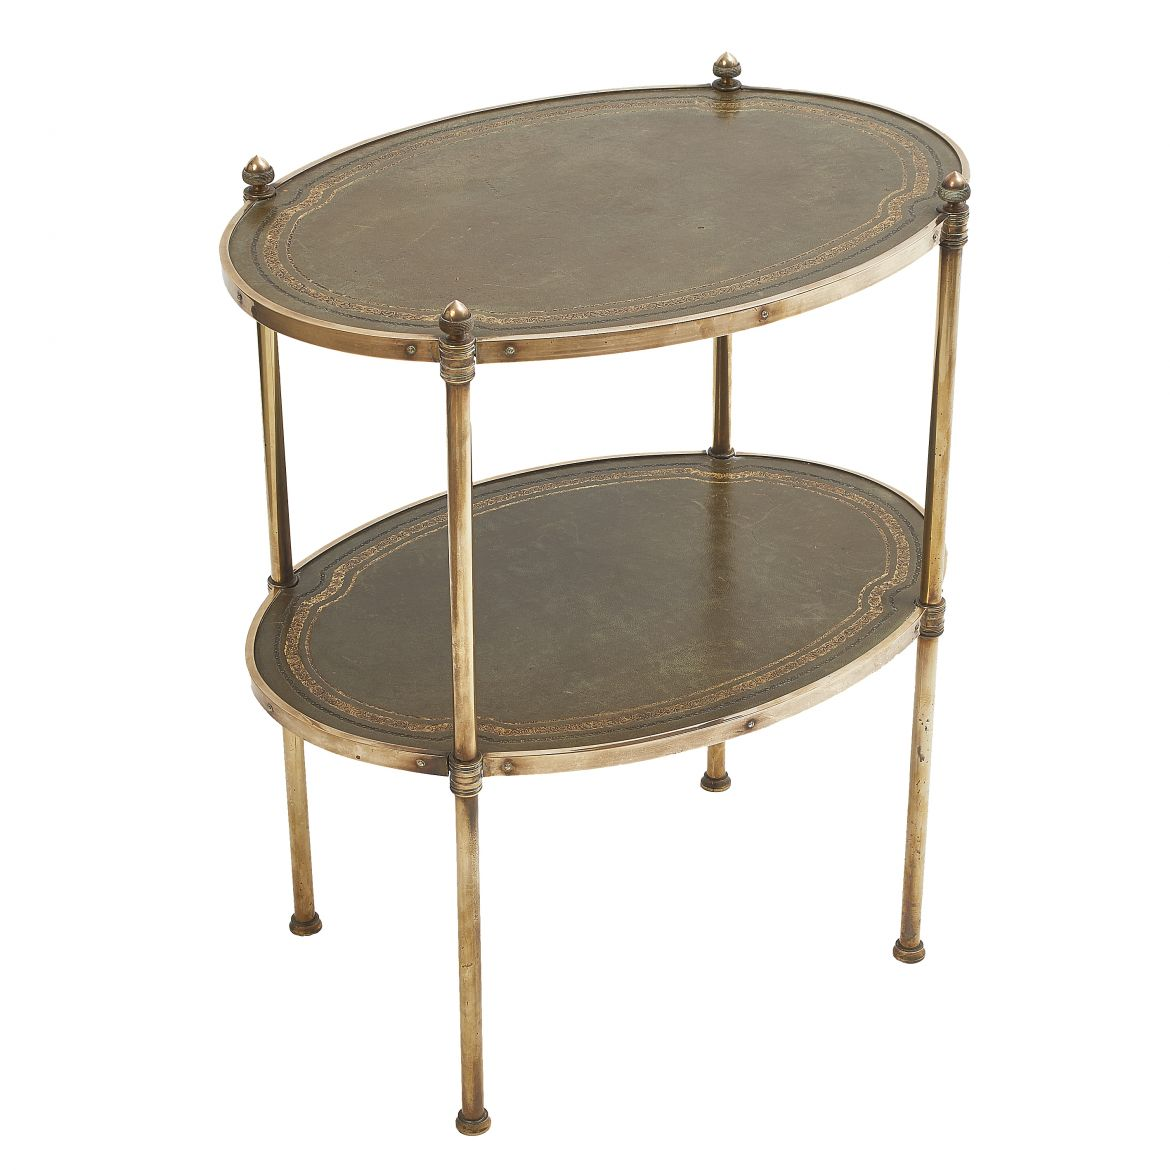 Oval Brass & Leather Side Table